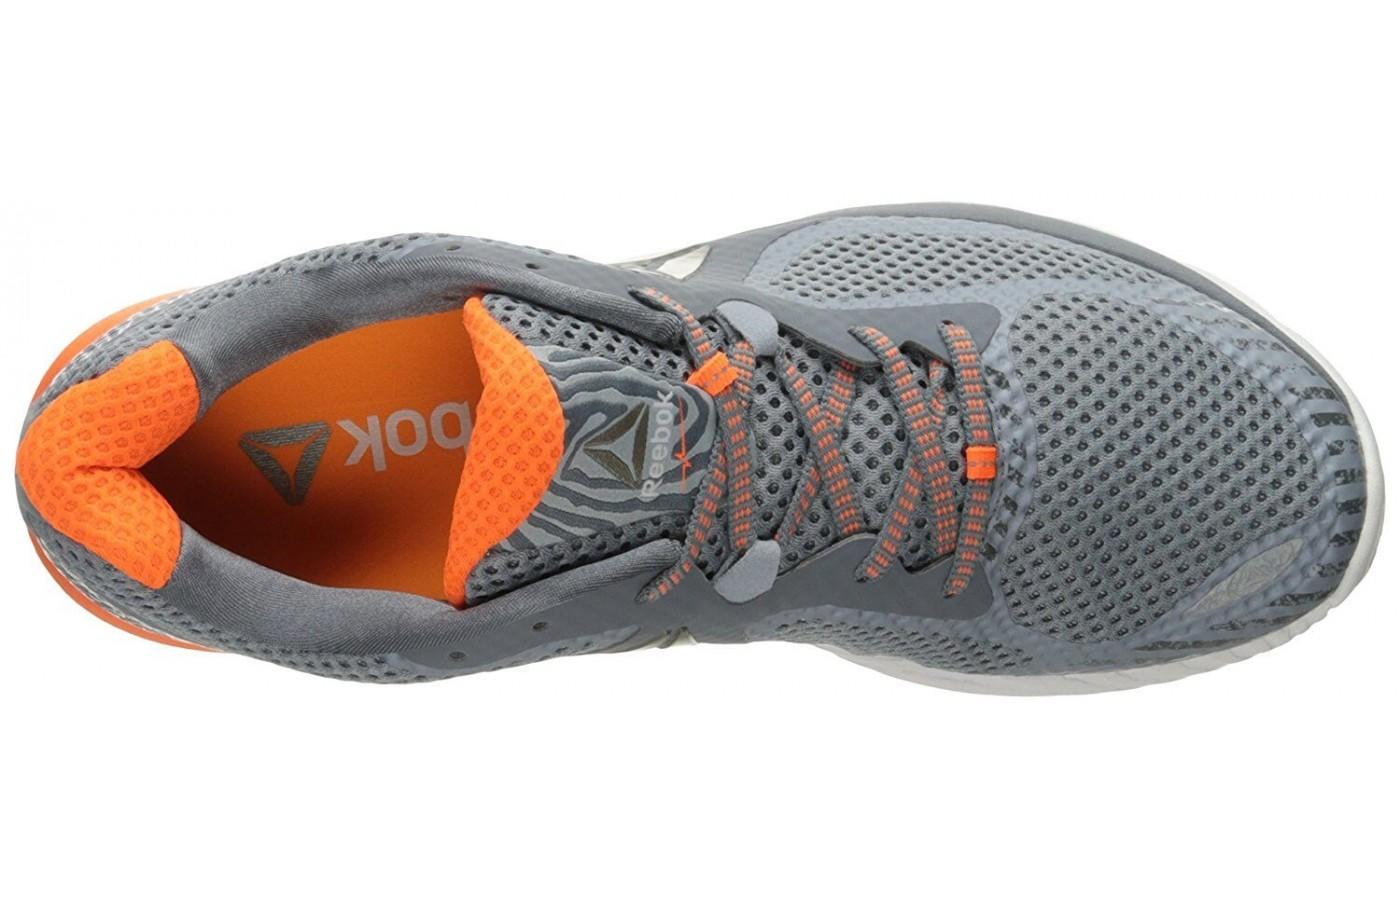 fa036dce64cdd0 ... the upper of the Reebok Harmony Road is highly breathable and  comfortable ...